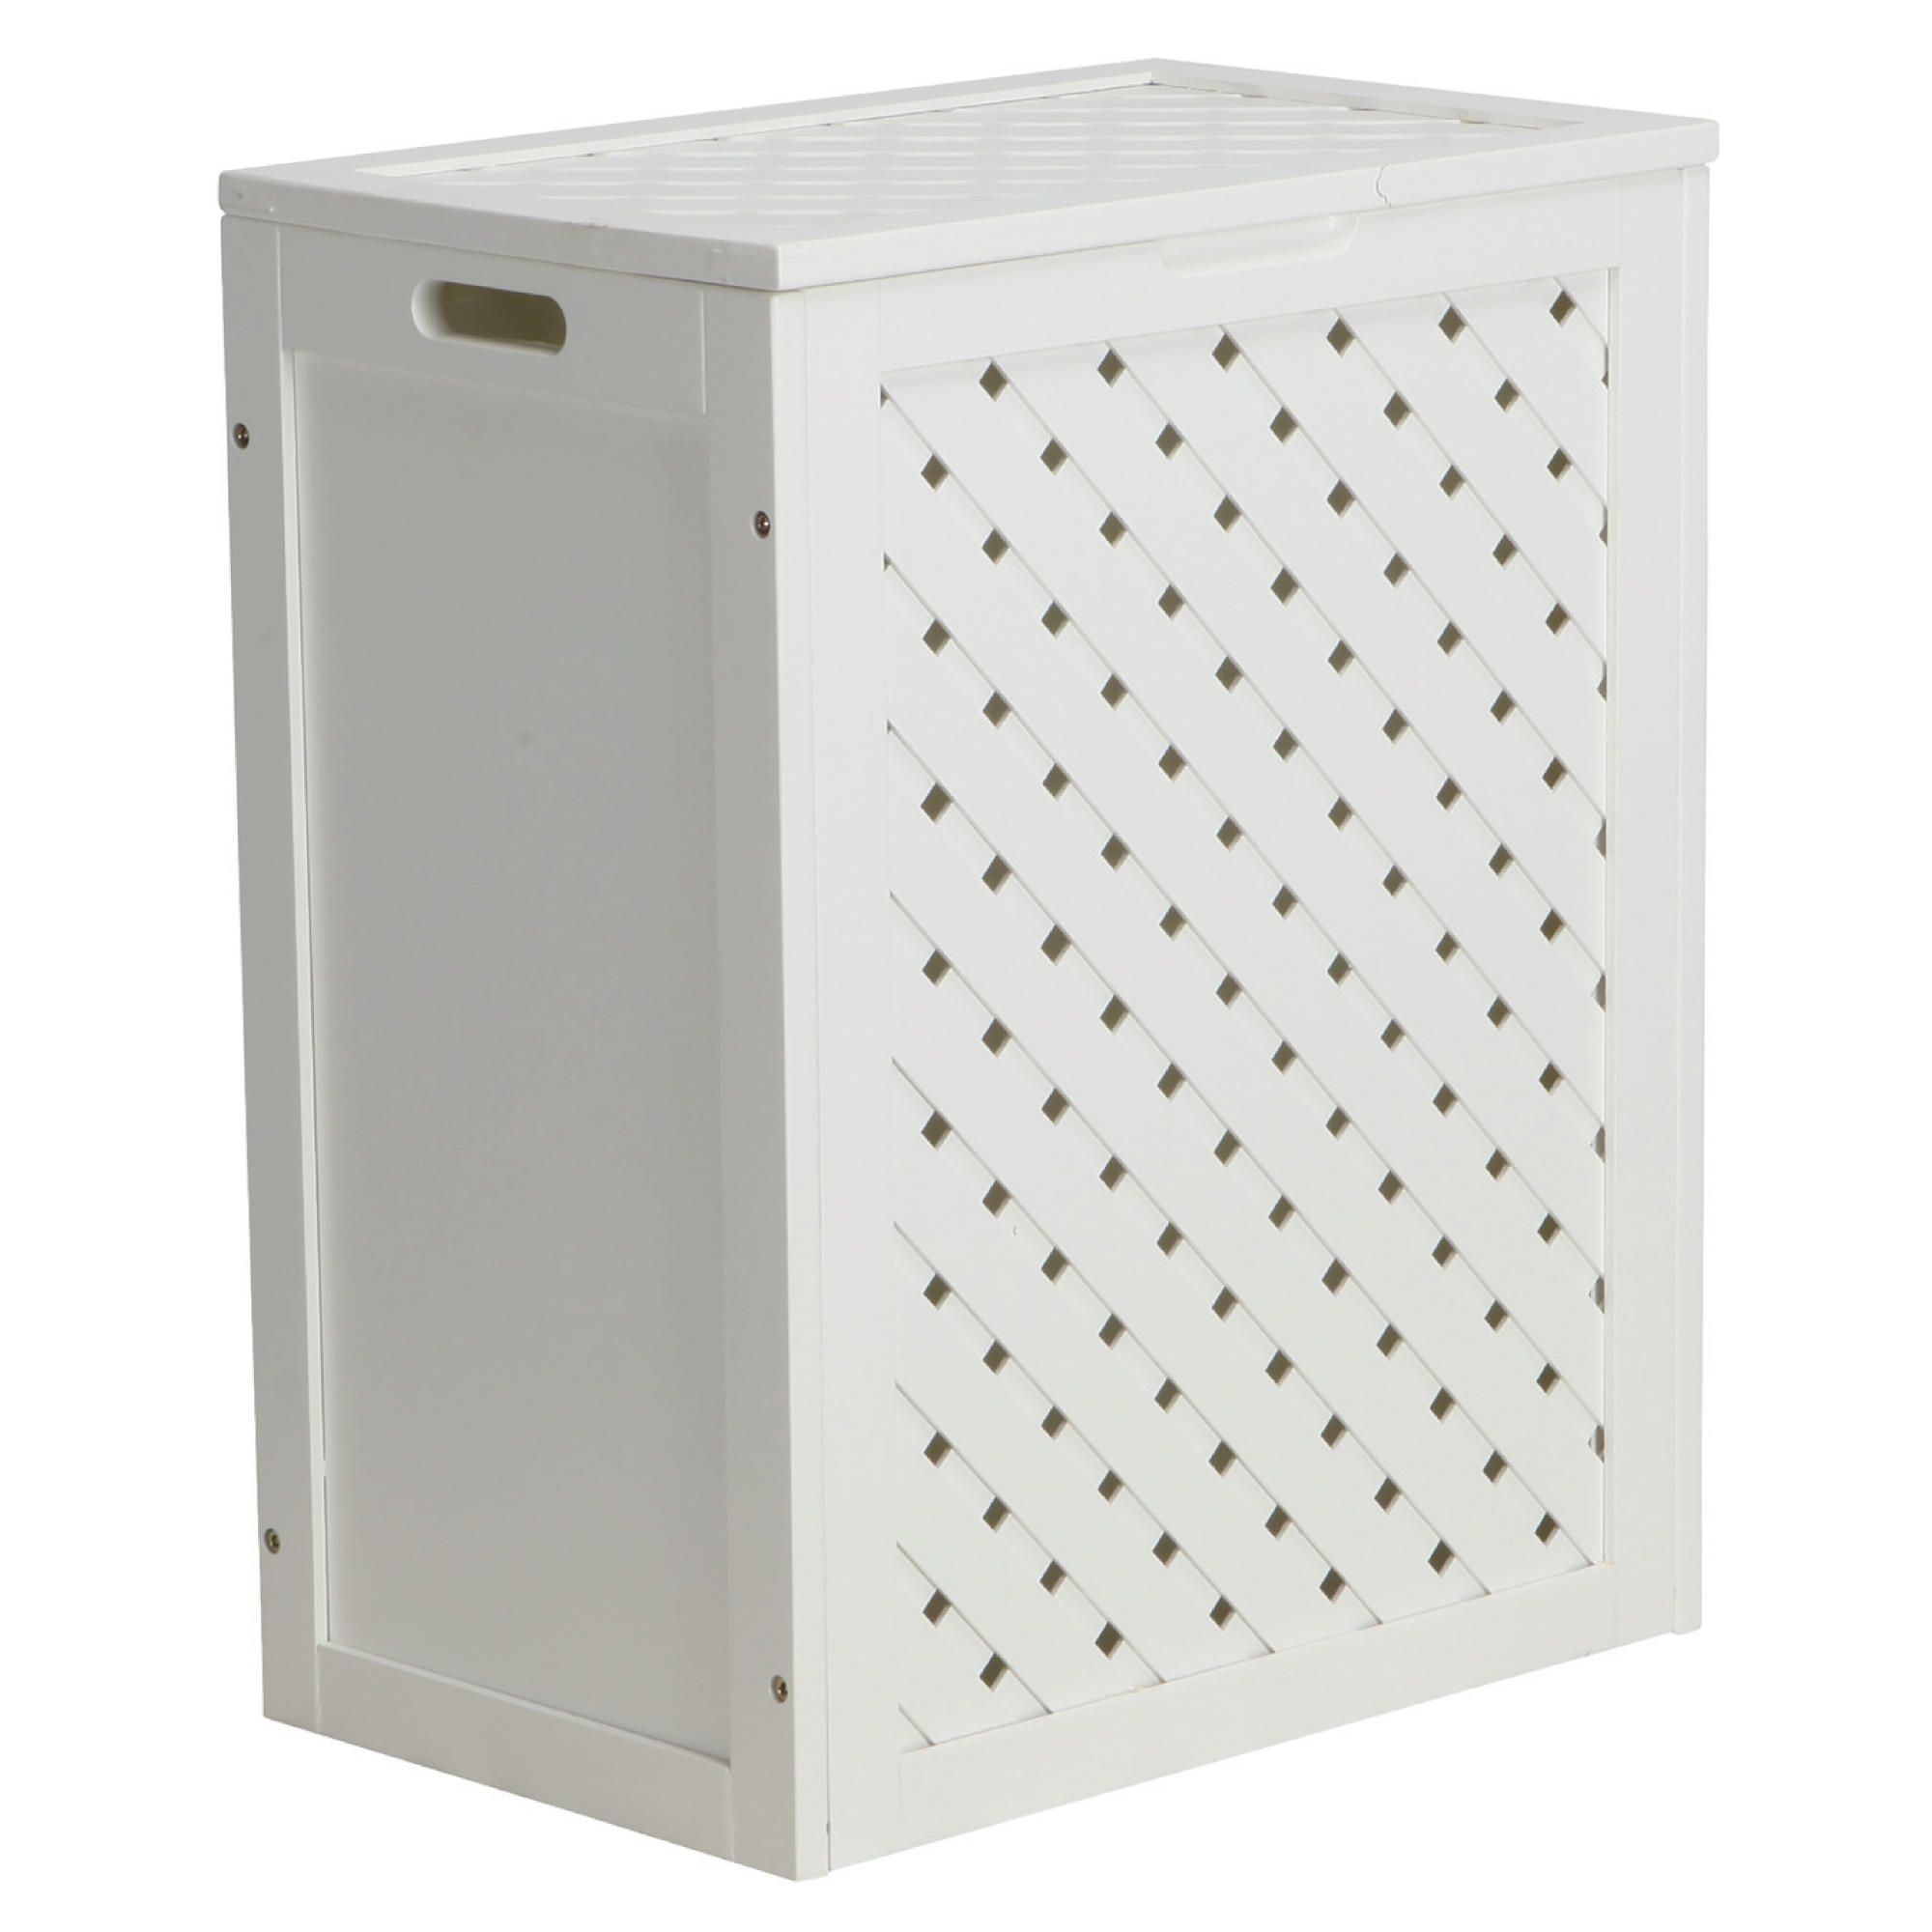 TheBathOutlet offers modern & contemporary laundry baskets in a variety of different styles and finishes to suit your own unique bathroom design. Before you are ready to purchase, get ideas by looking through our high quality products, read customer reviews, and get tips and information from our product Q/A's.